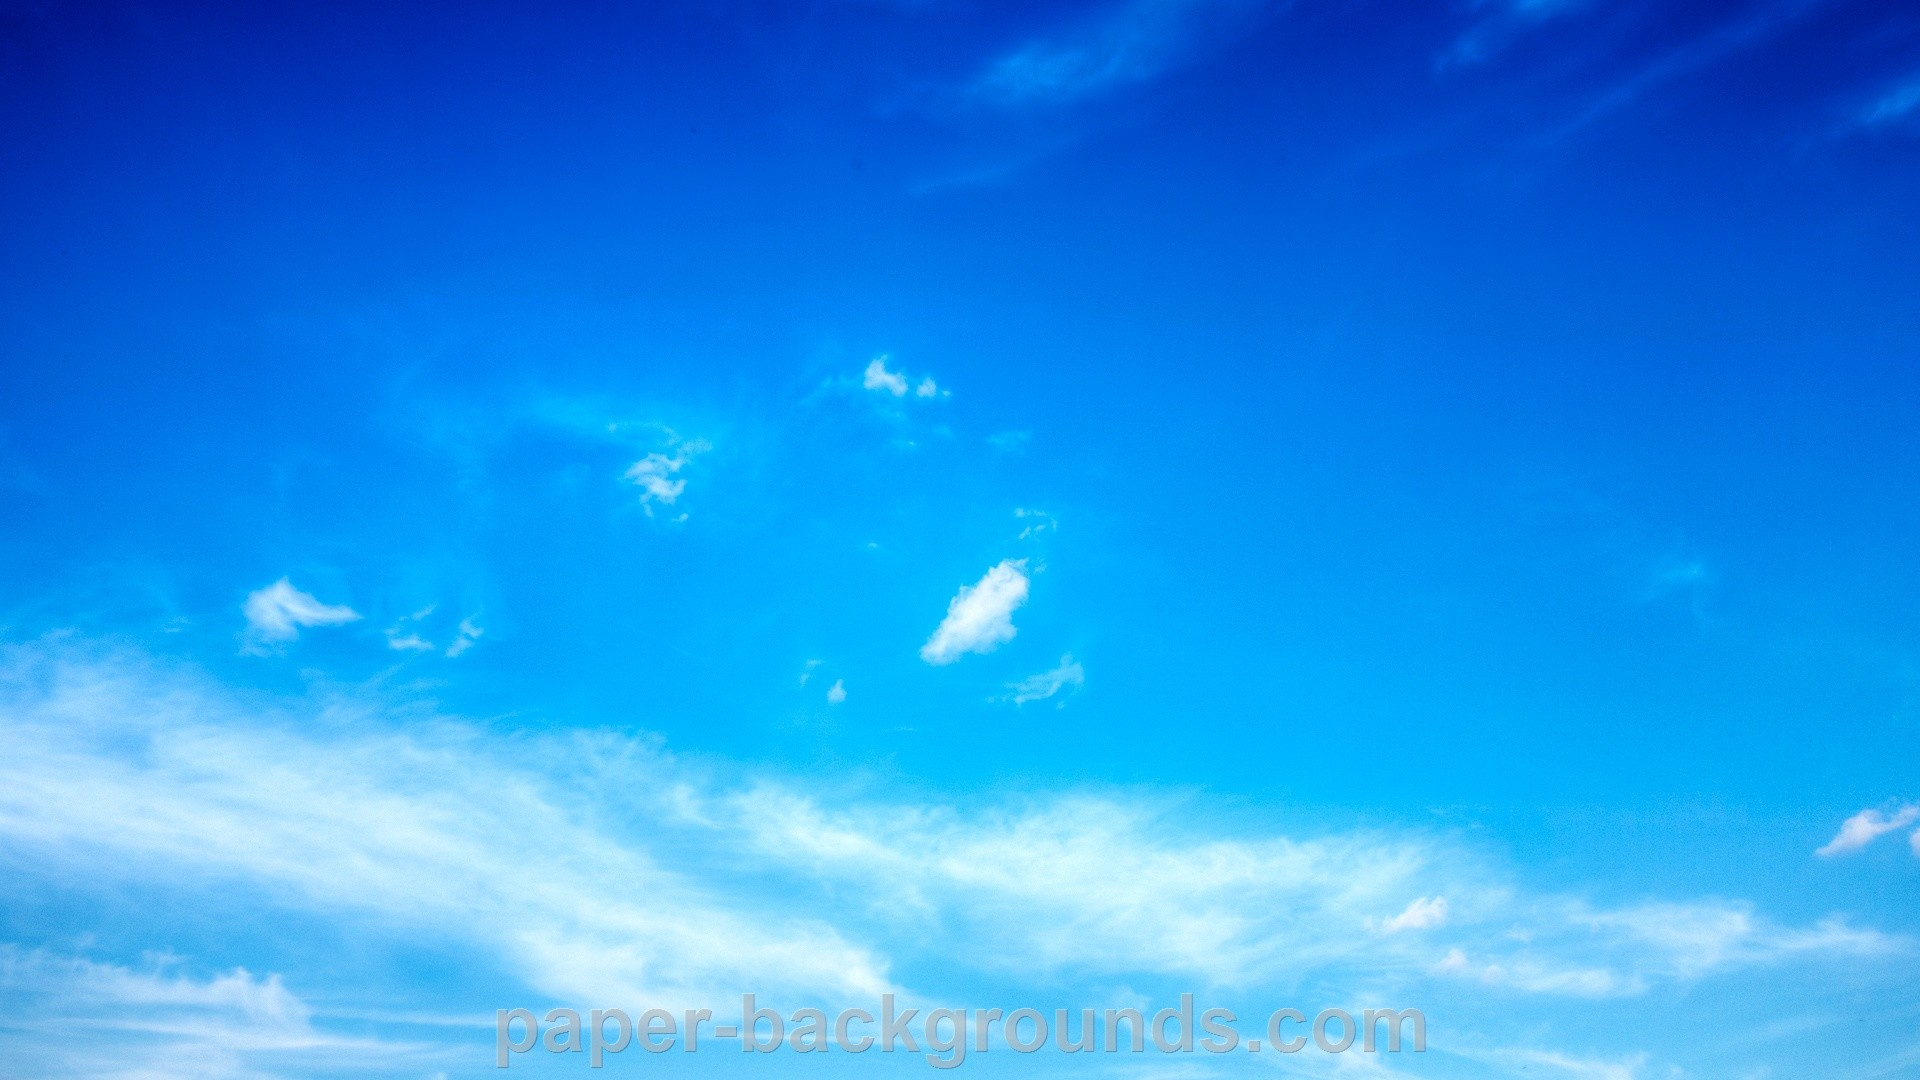 1920x1080 tags blue background sky blue background blue sky date 13 03 12 .